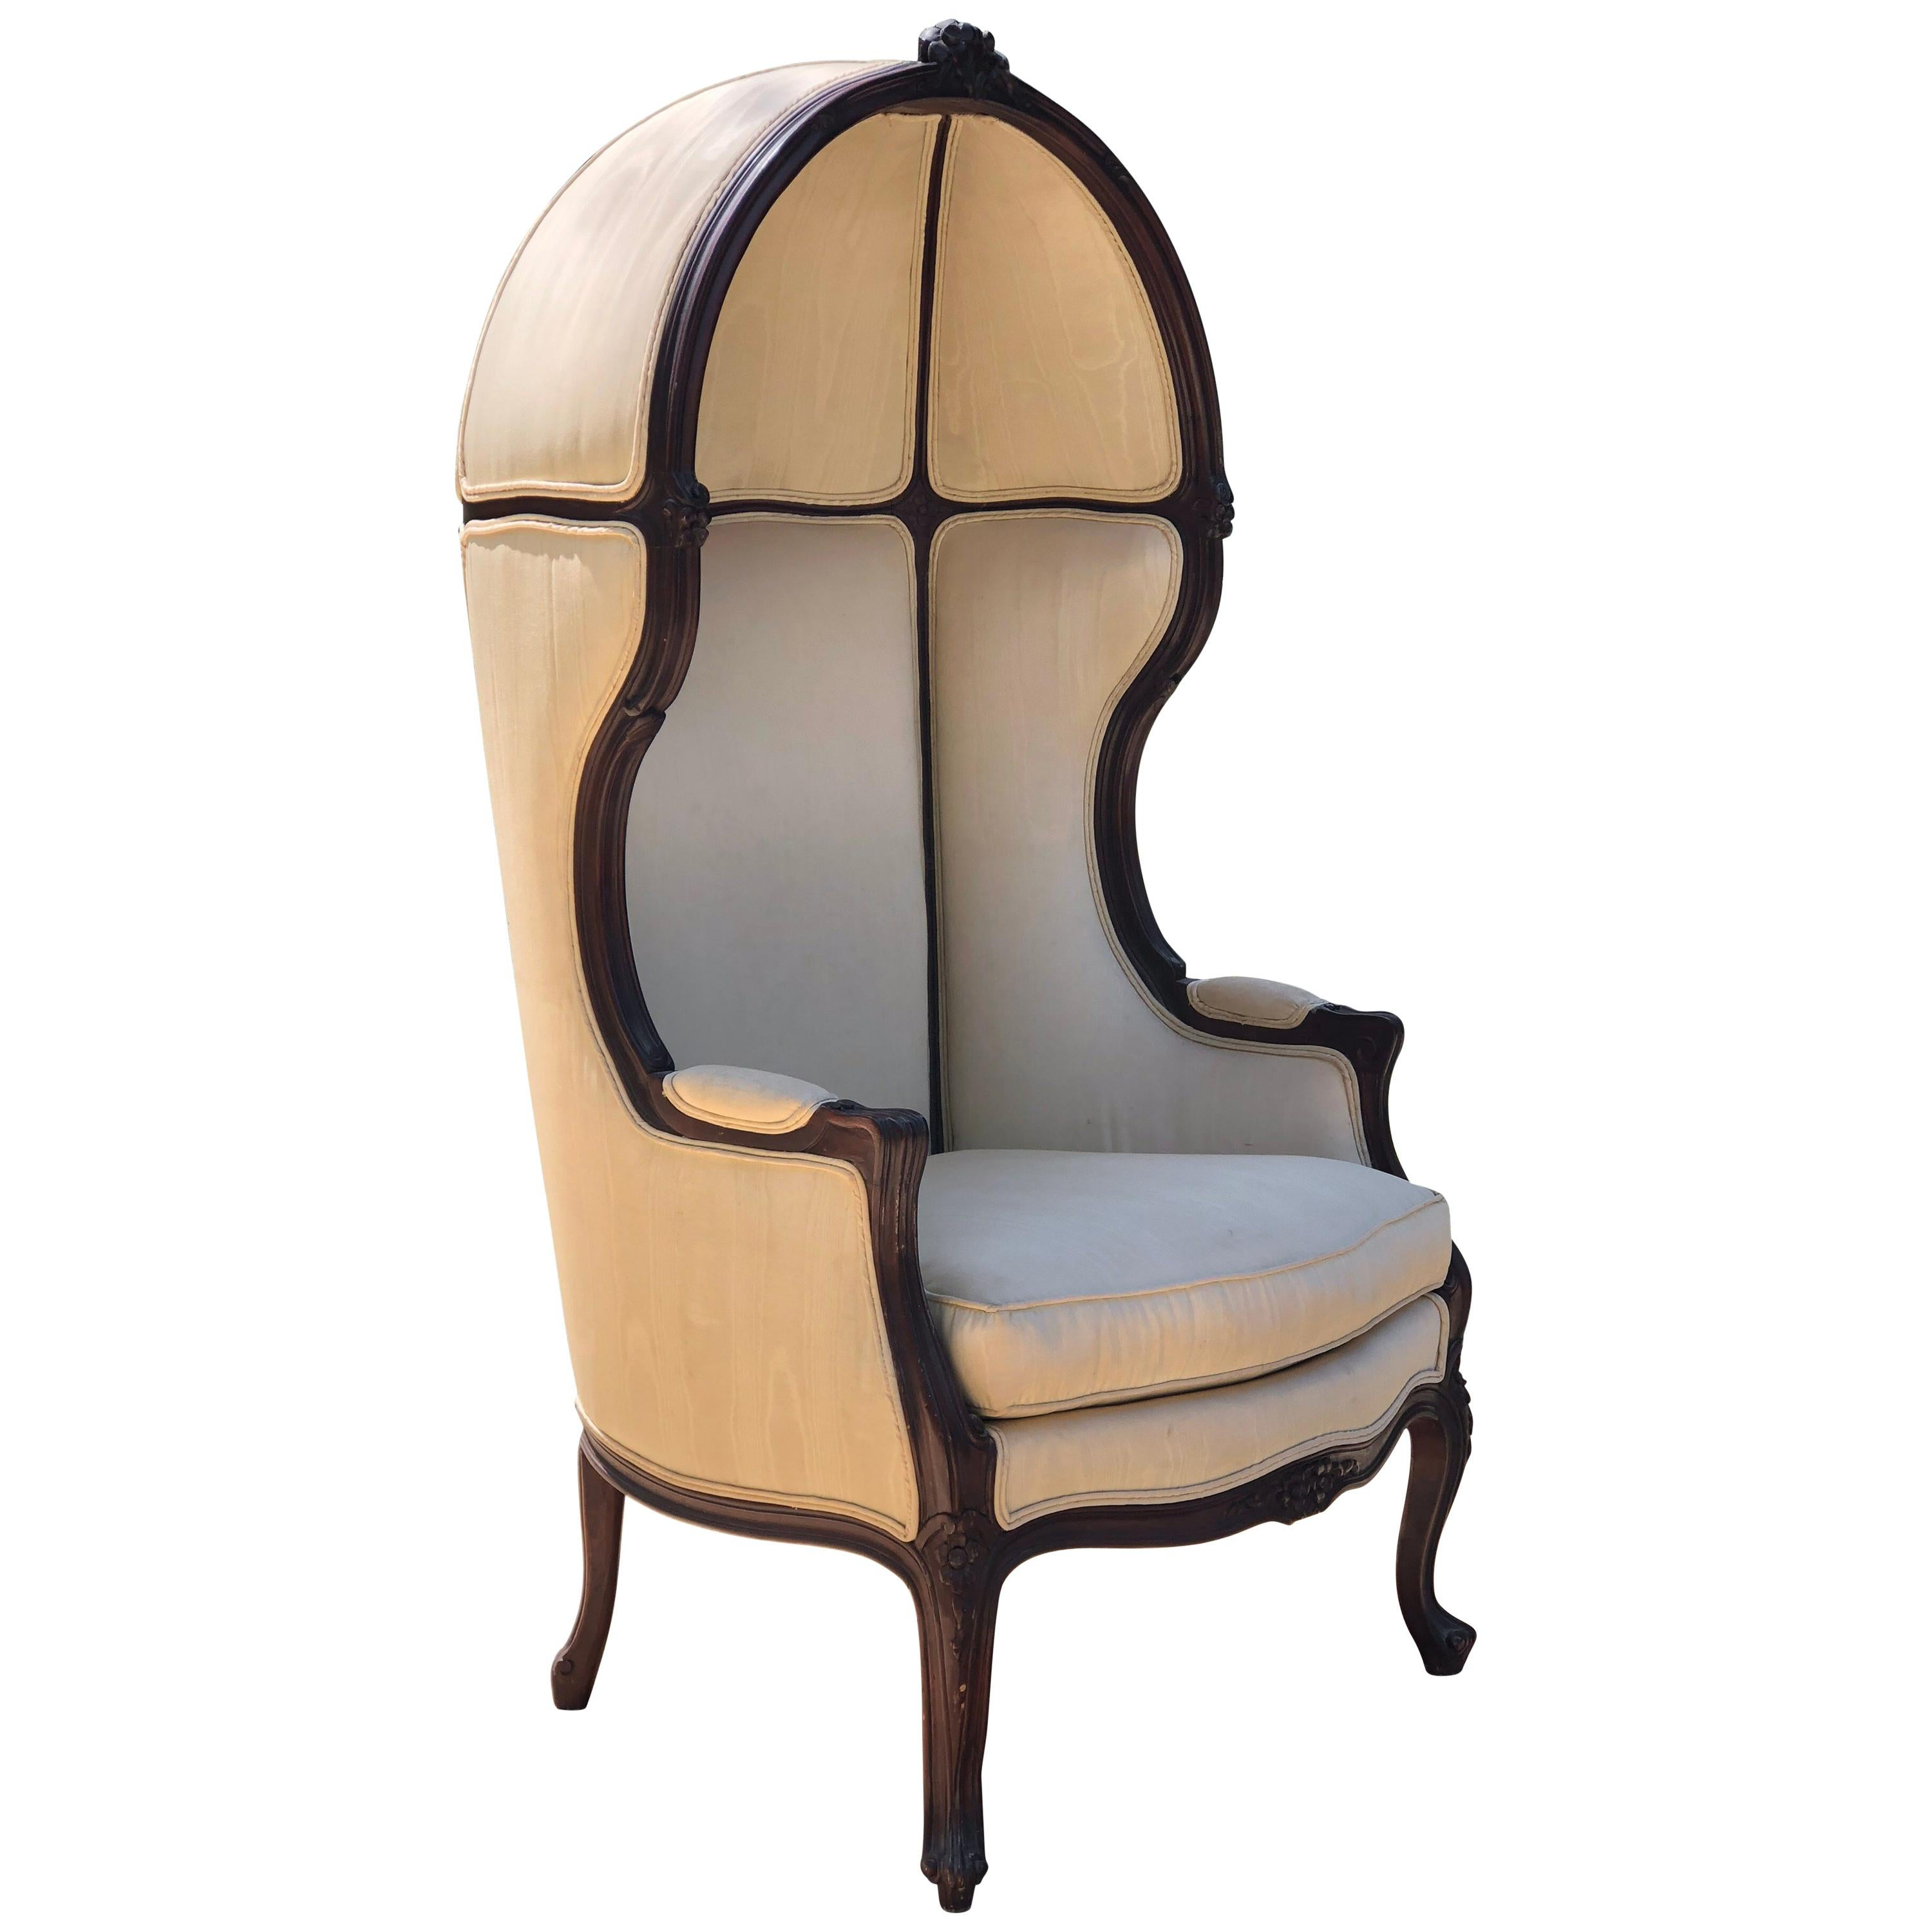 Early 20th Century Louis XV Style Porter's Chair of Walnut